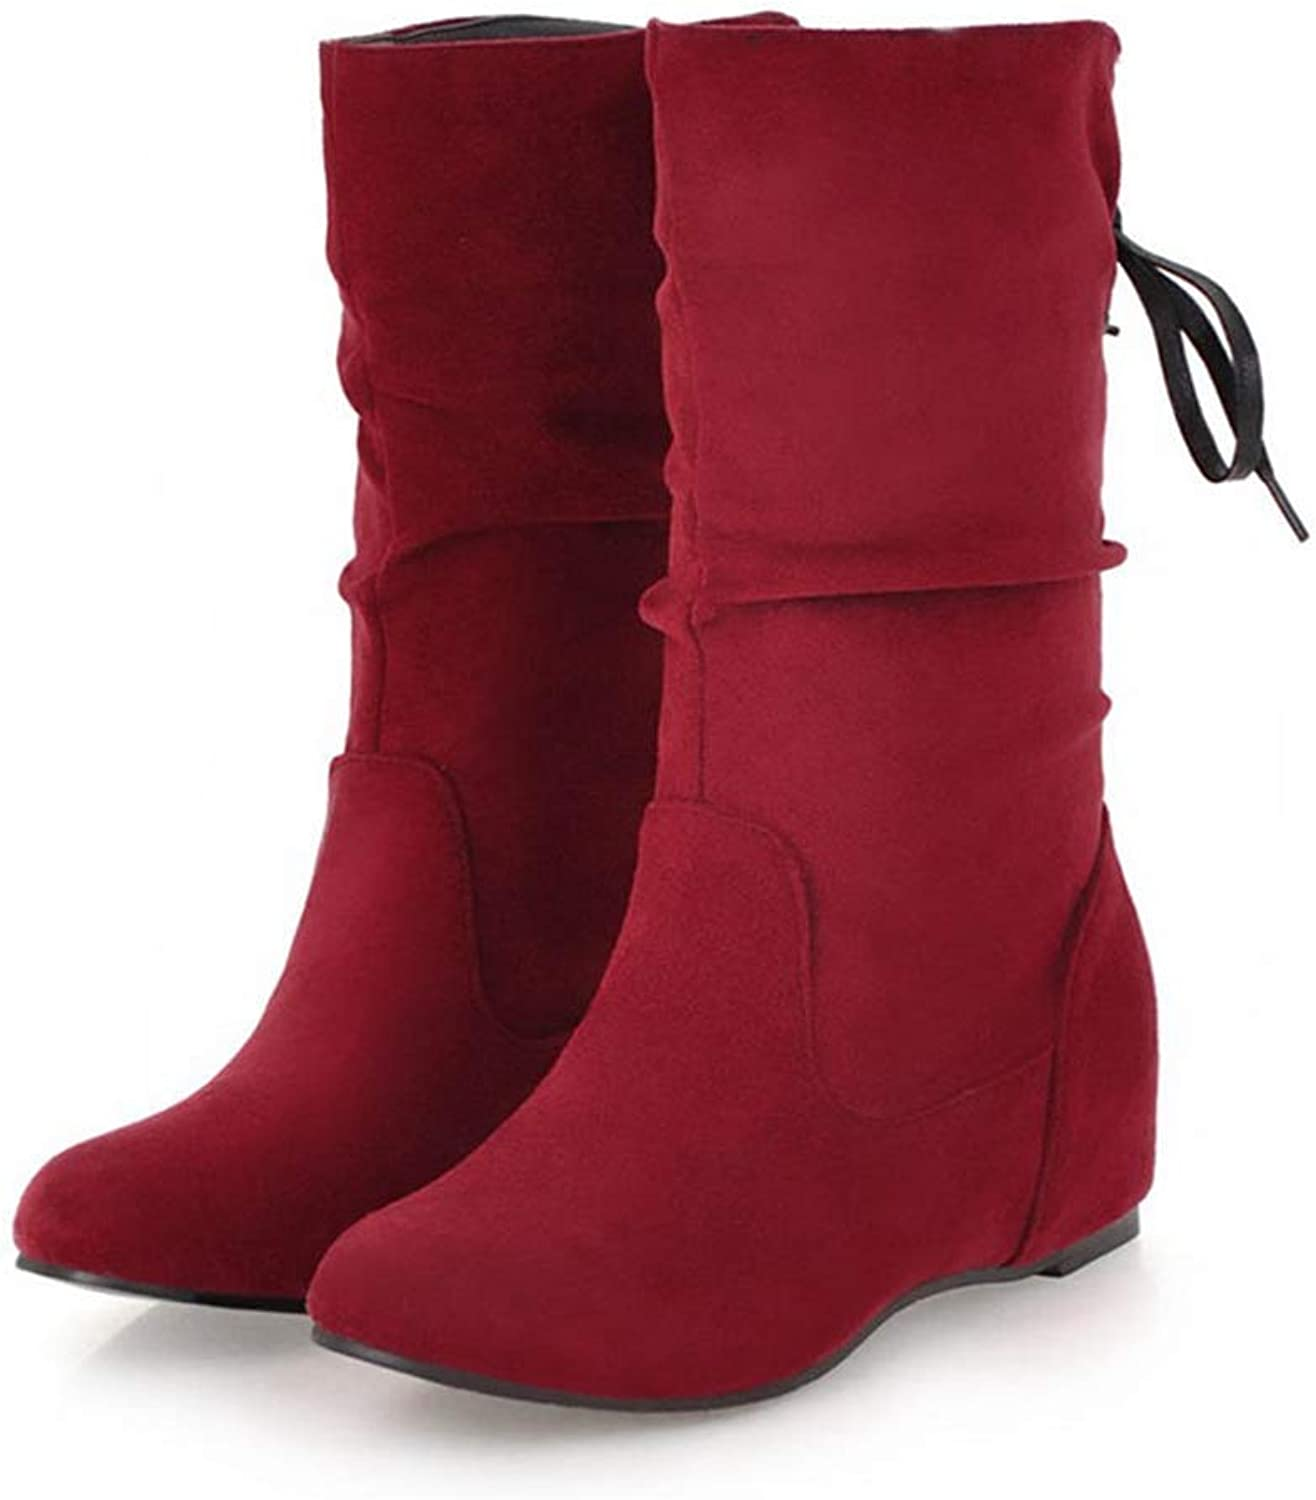 Gcanwea Fashion Plus Size Slip On Solid Add Fur Winter Boots shoes Woman Mid Calf Boots Woman shoes Female shoes Pure color Dress Skinny Warm Girls Elegant Joker Brown 4.5 M US Boots